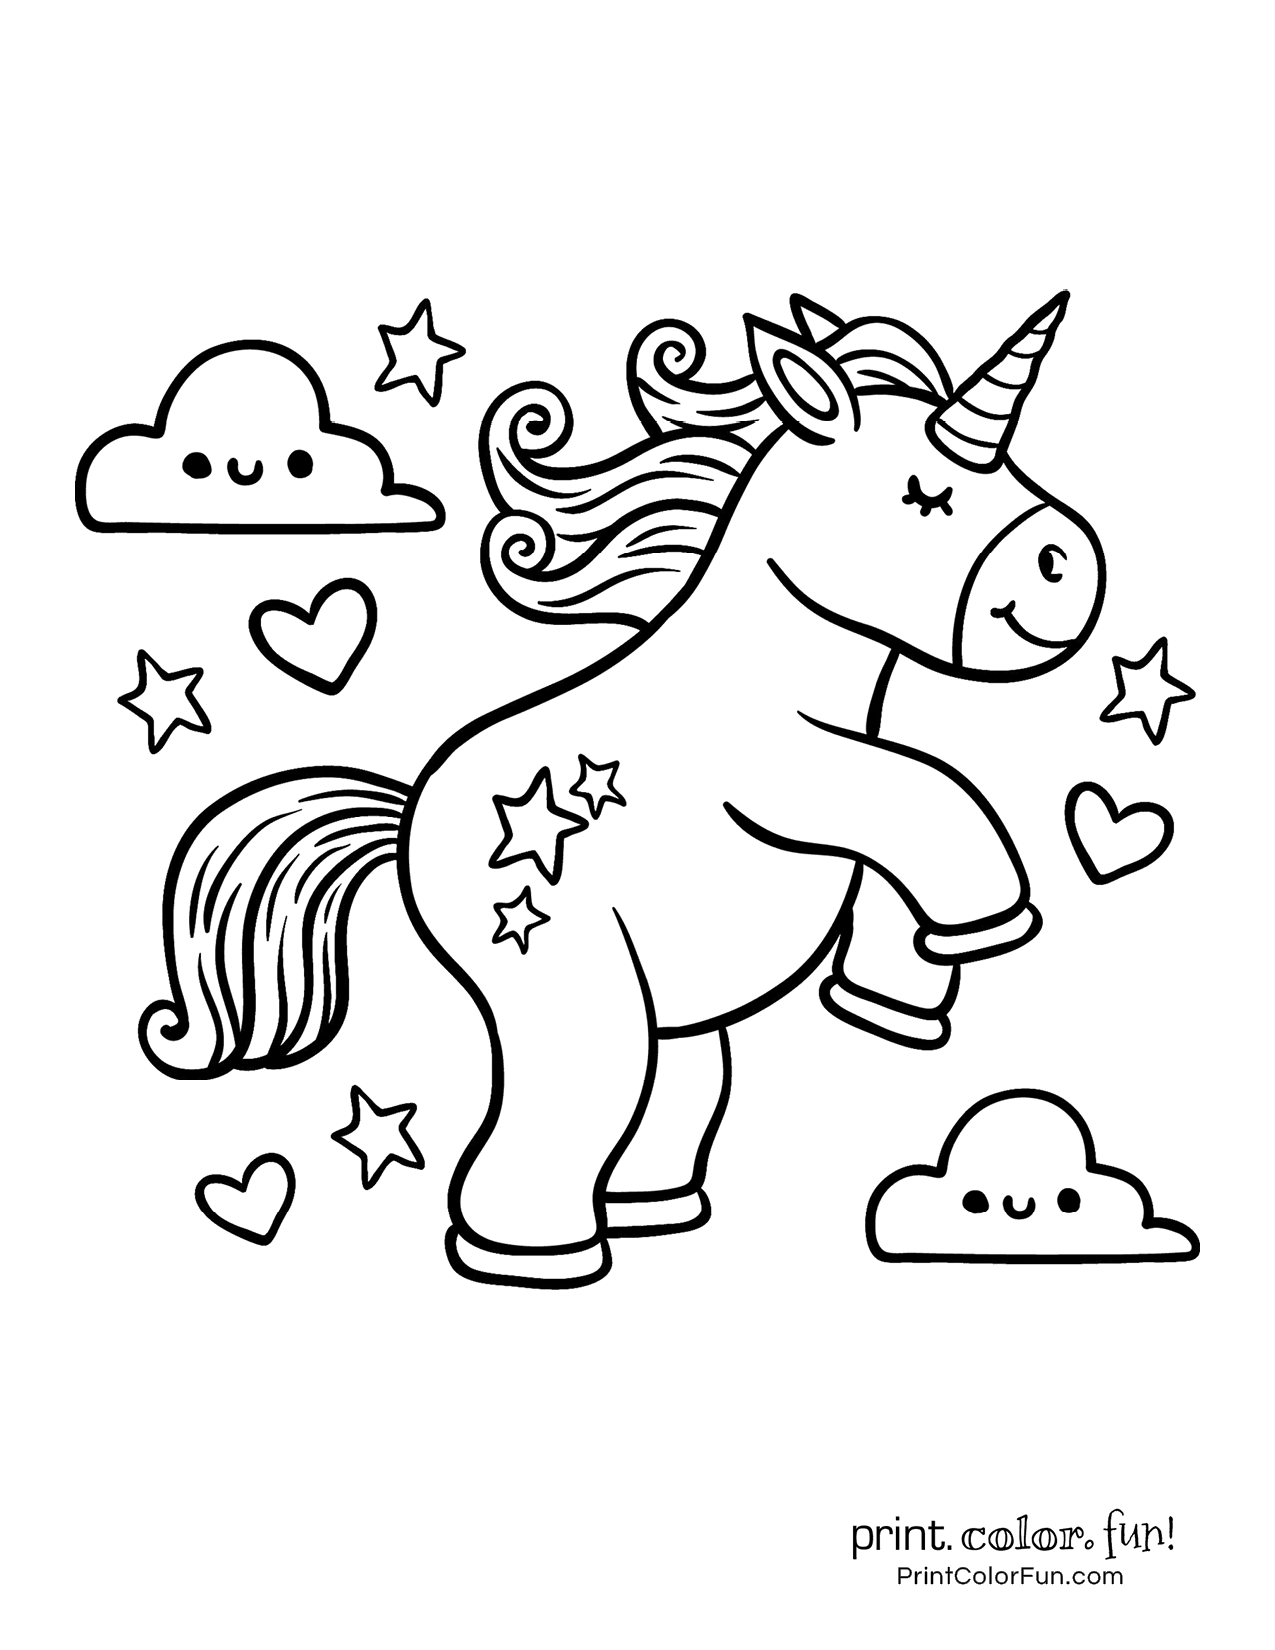 100 Magical Unicorn Coloring Pages The Ultimate Free Printable Collection At Prin Unicorn Coloring Pages Unicorn Printables Disney Princess Coloring Pages